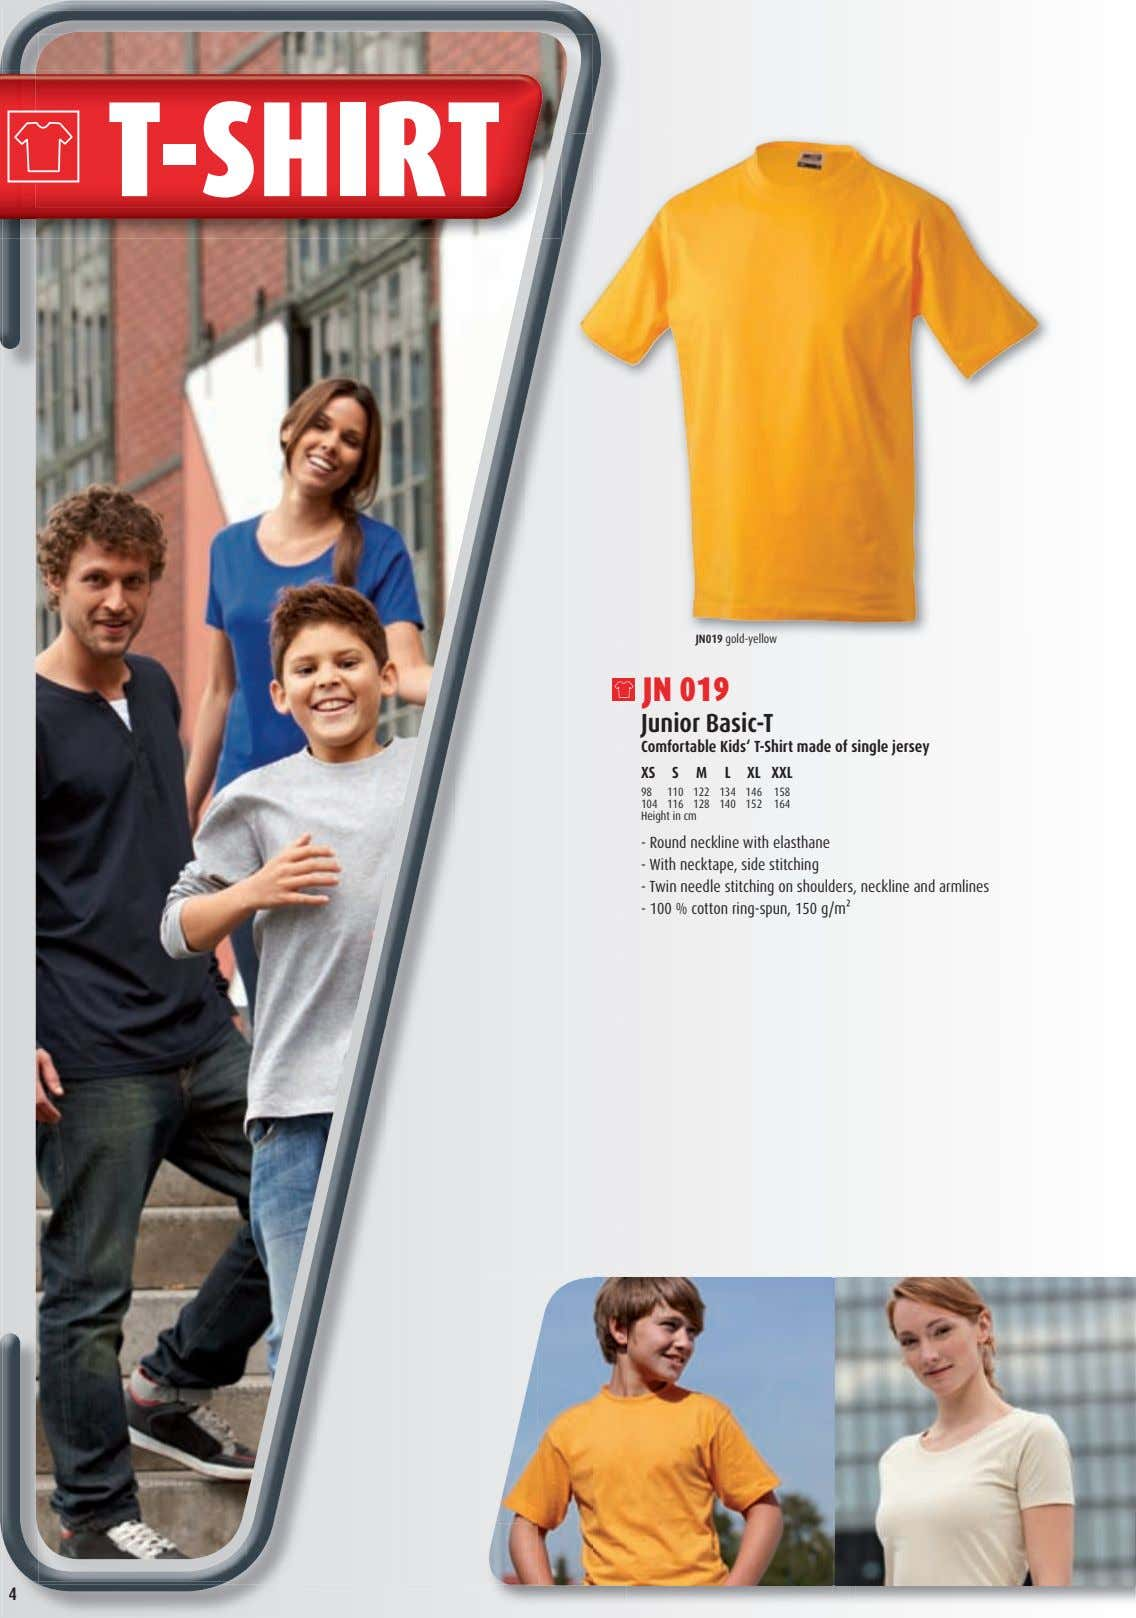 T-SHIRT JN019 gold-yellow JN 019 Junior Basic-T Comfortable Kids' T-Shirt made of single jersey XS